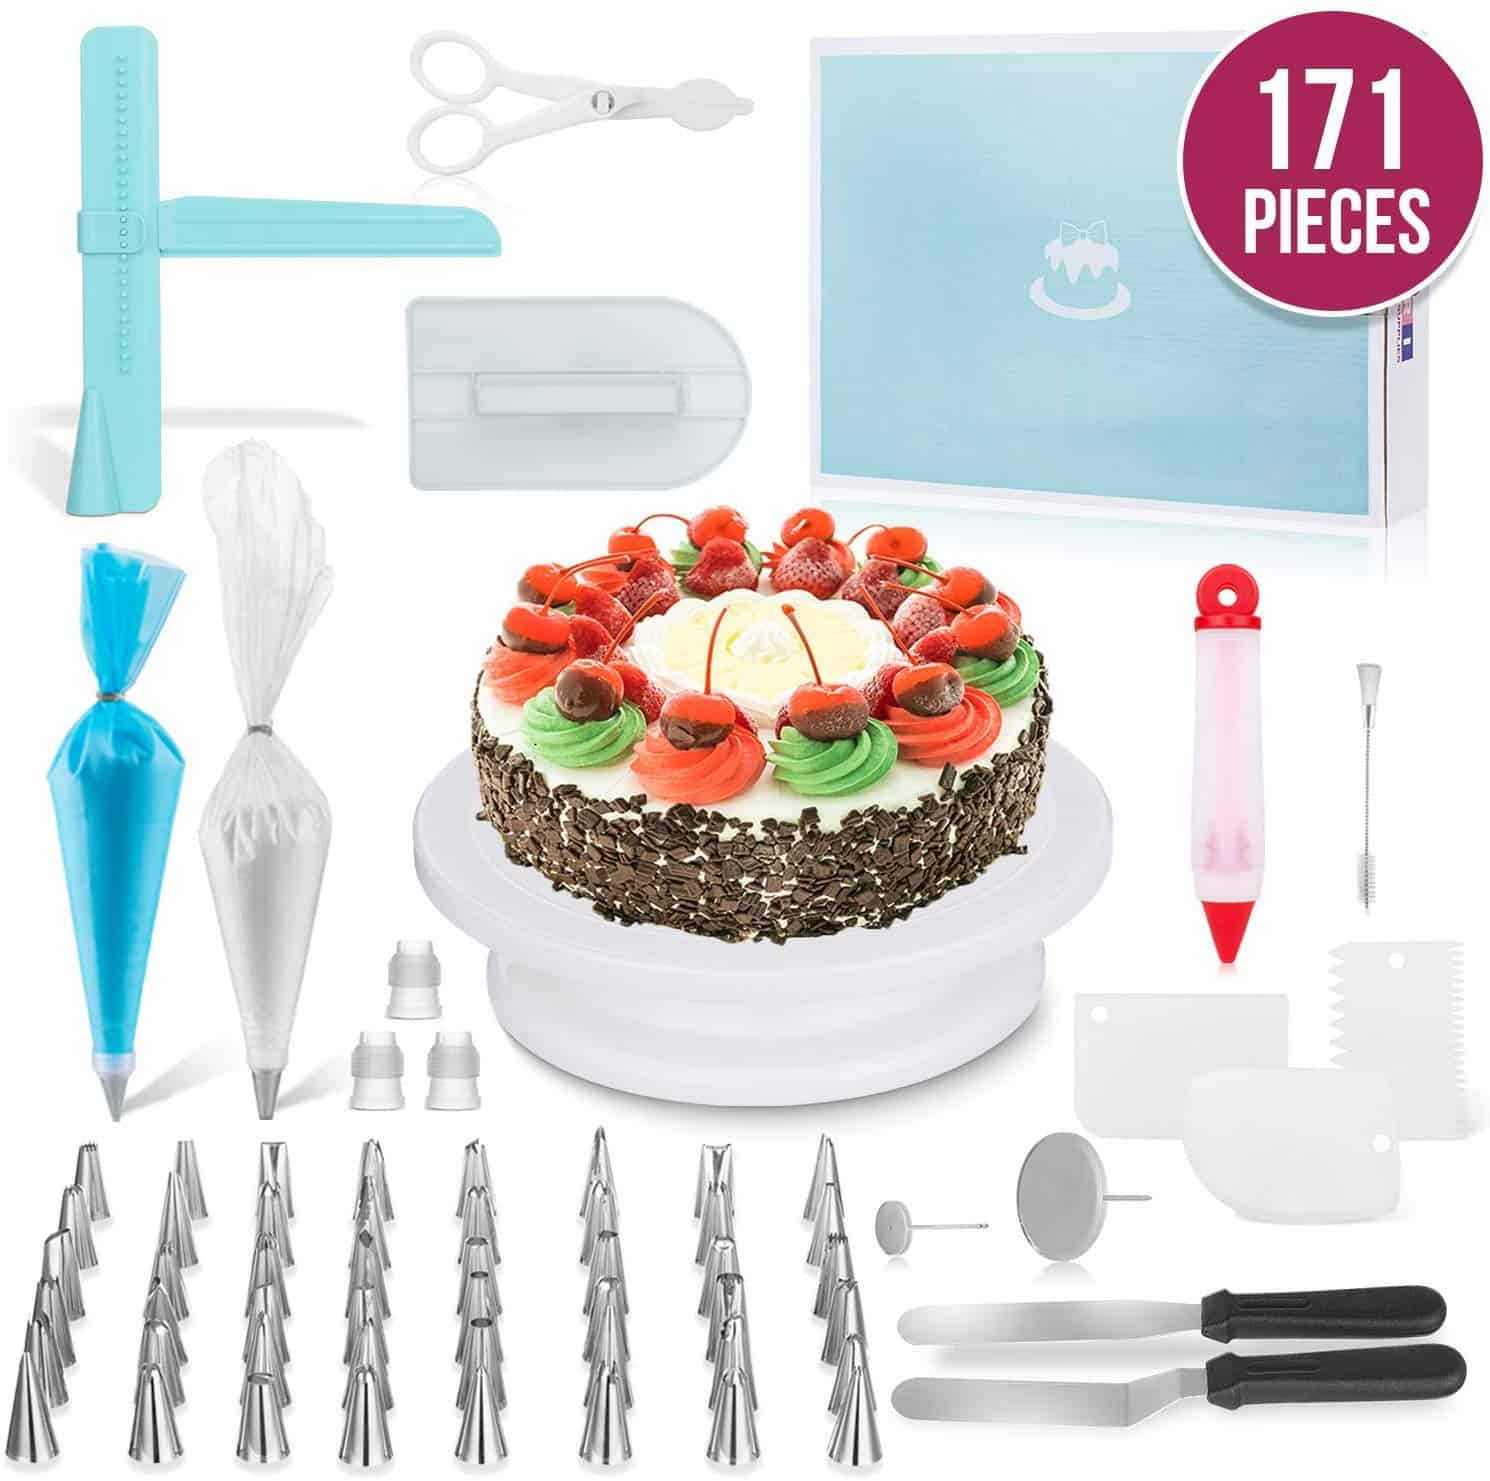 Merri 171 piece cake decorating kit